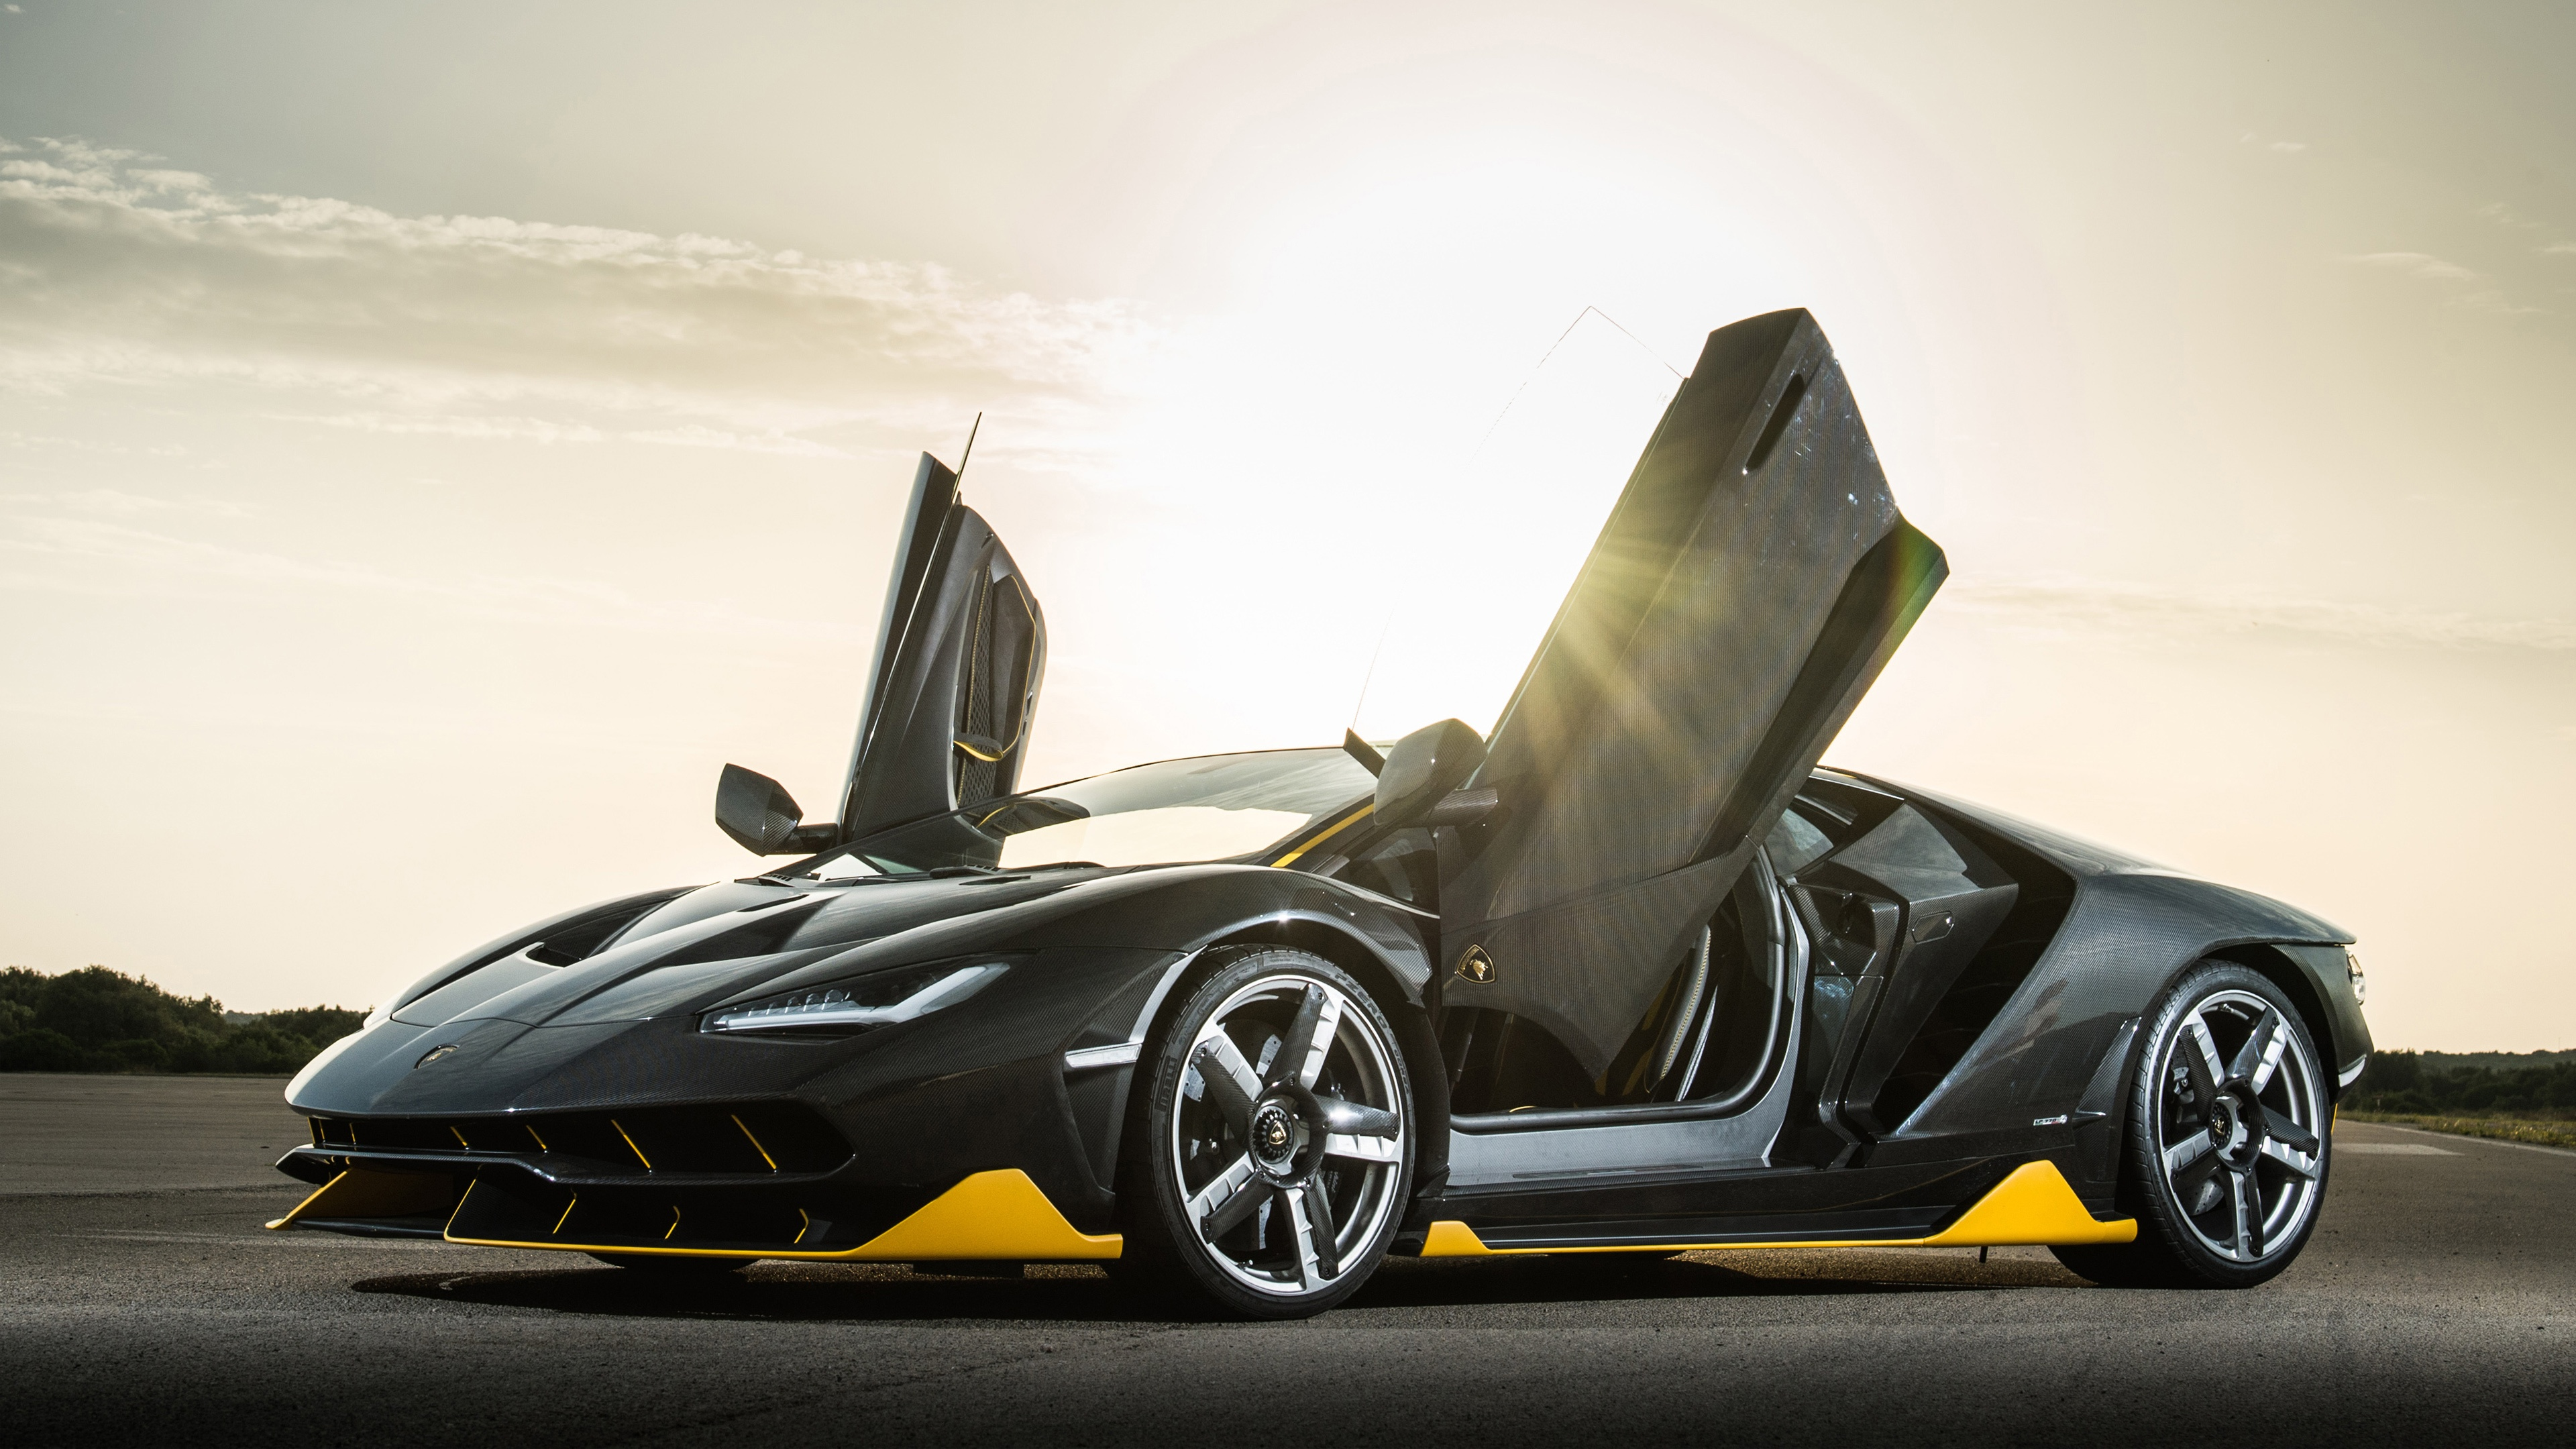 Lamborghini Centenario Hyper Car Wallpapers In Jpg Format For Free